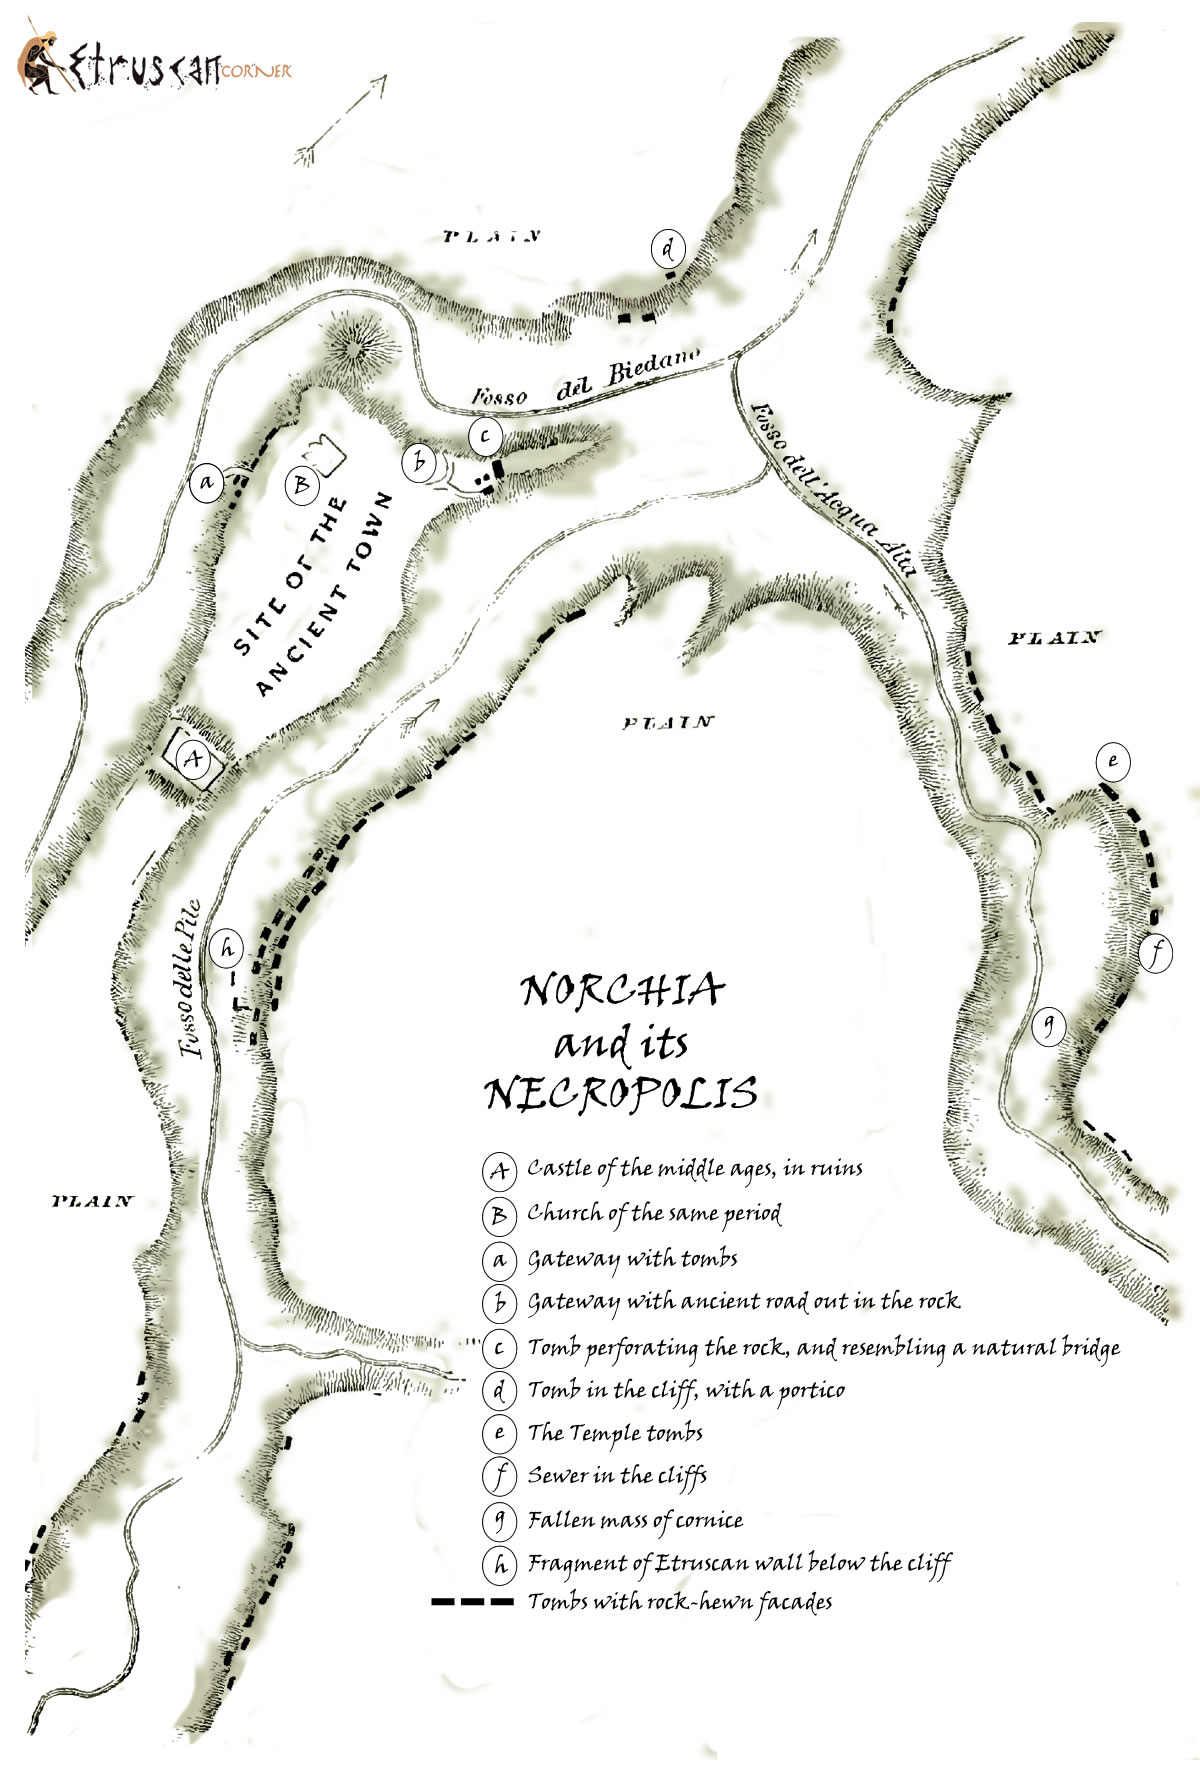 Map of Norchia Necropolis Etruscan Corner